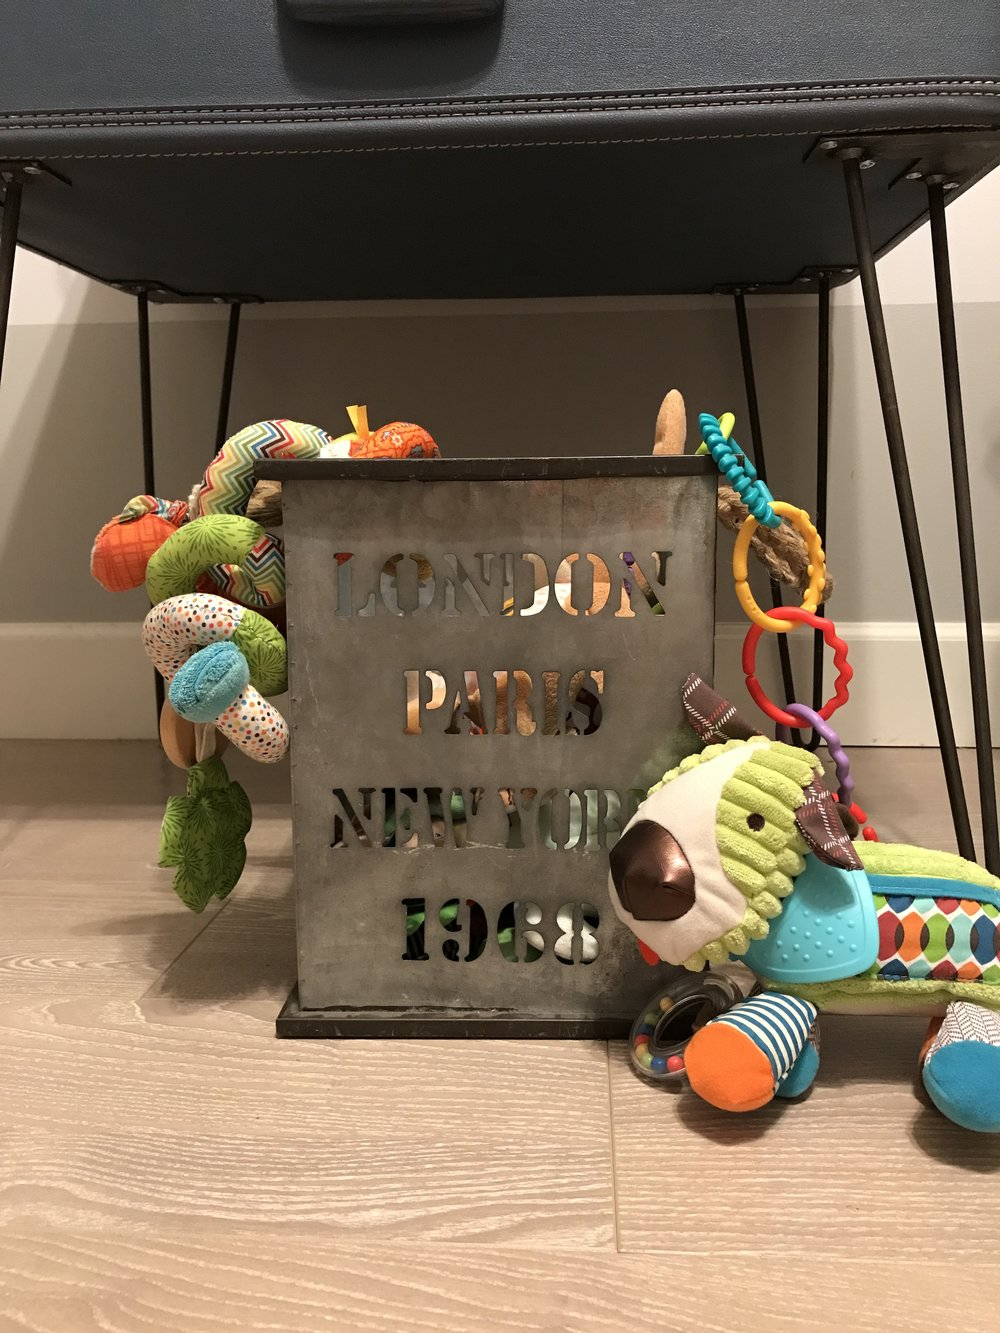 STORAGE IS KEY! - Finding creative ways to store all of the baby stuff was really important to me.